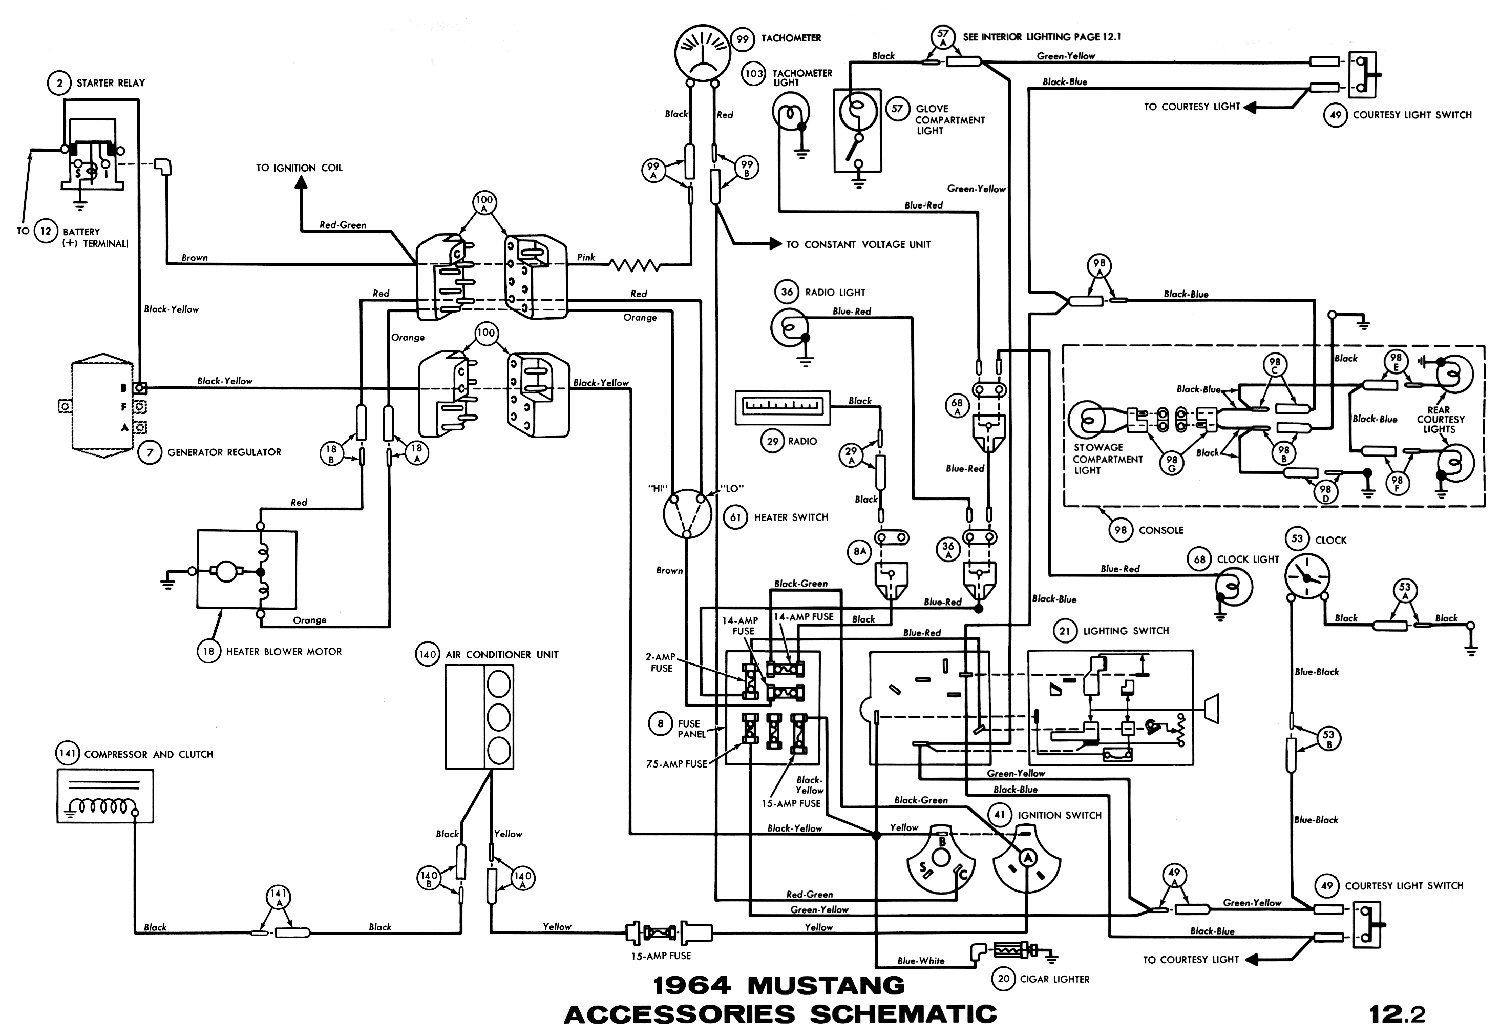 1965 mustang ignition switch wiring diagram Download-Ford Econoline F350 Wiring Diagram Trucks Crate Engines In 2007 Mustang 15-t